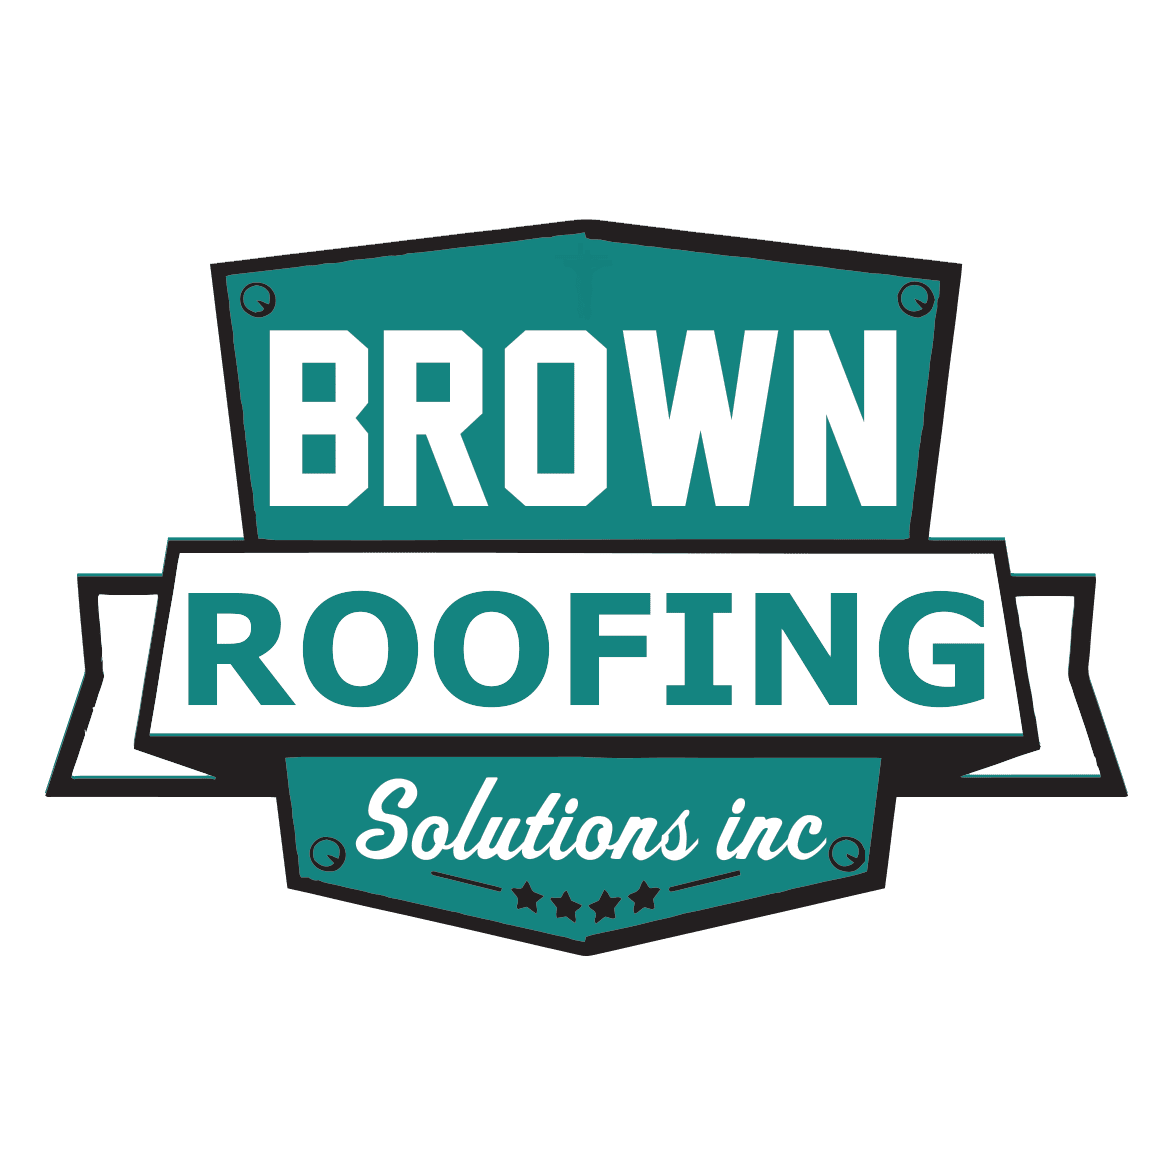 Brown Roofing Solutions Inc. image 3